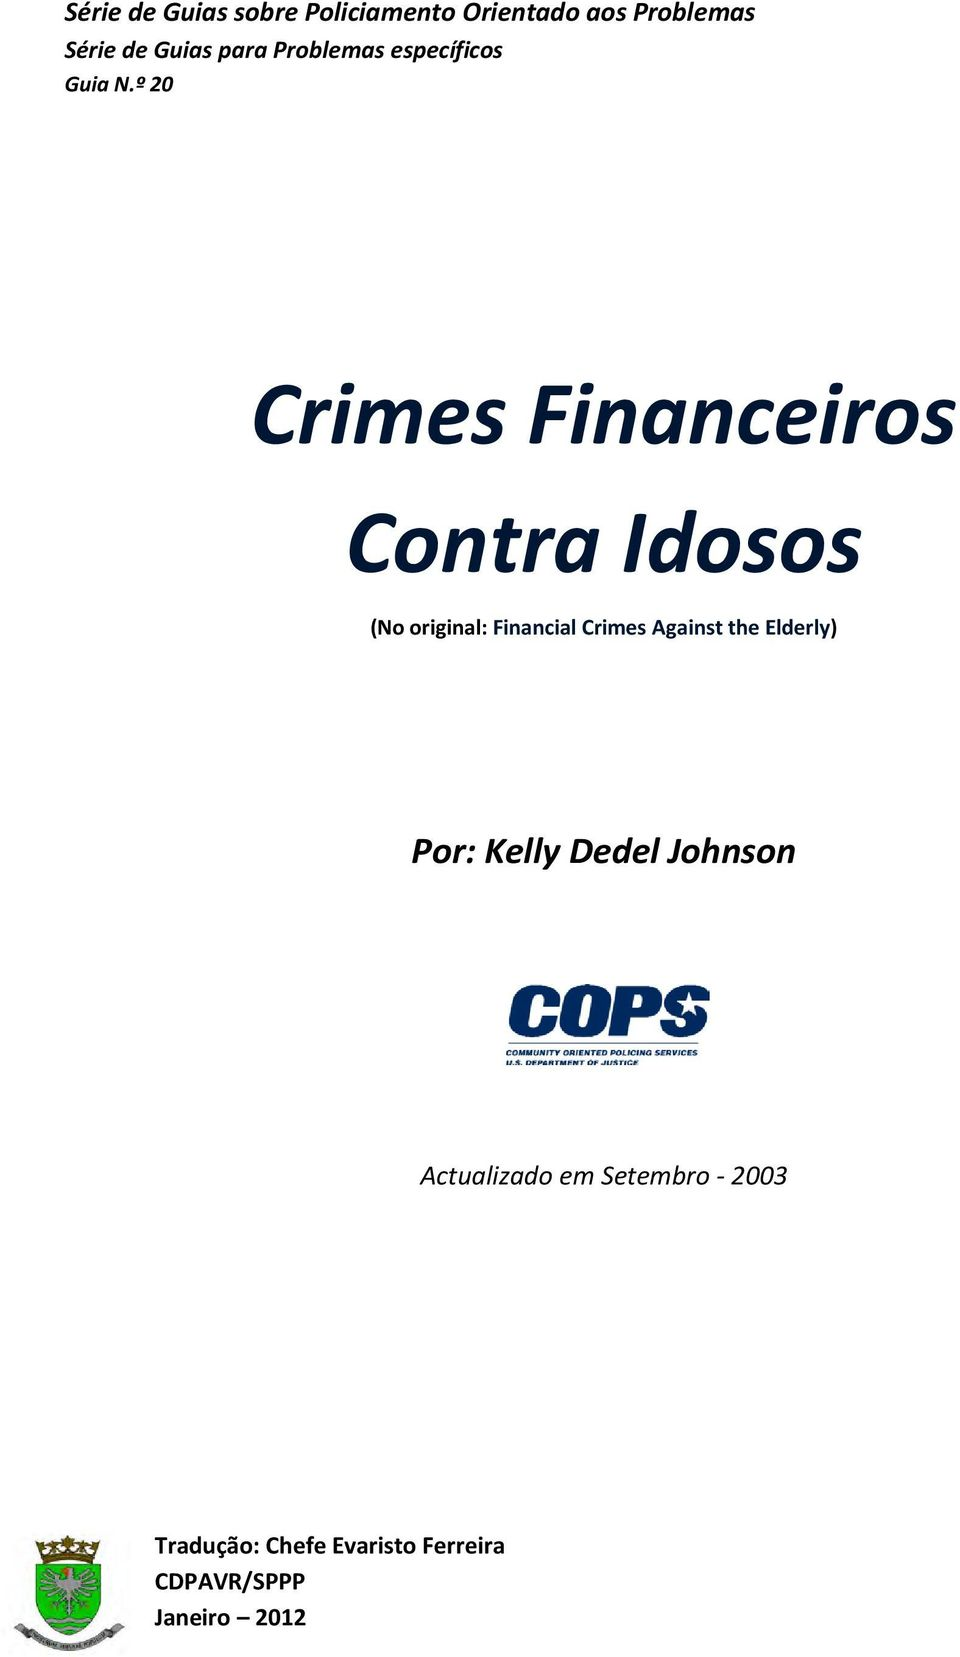 º 20 Crimes Financeiros Contra Idosos (No original: Financial Crimes Against